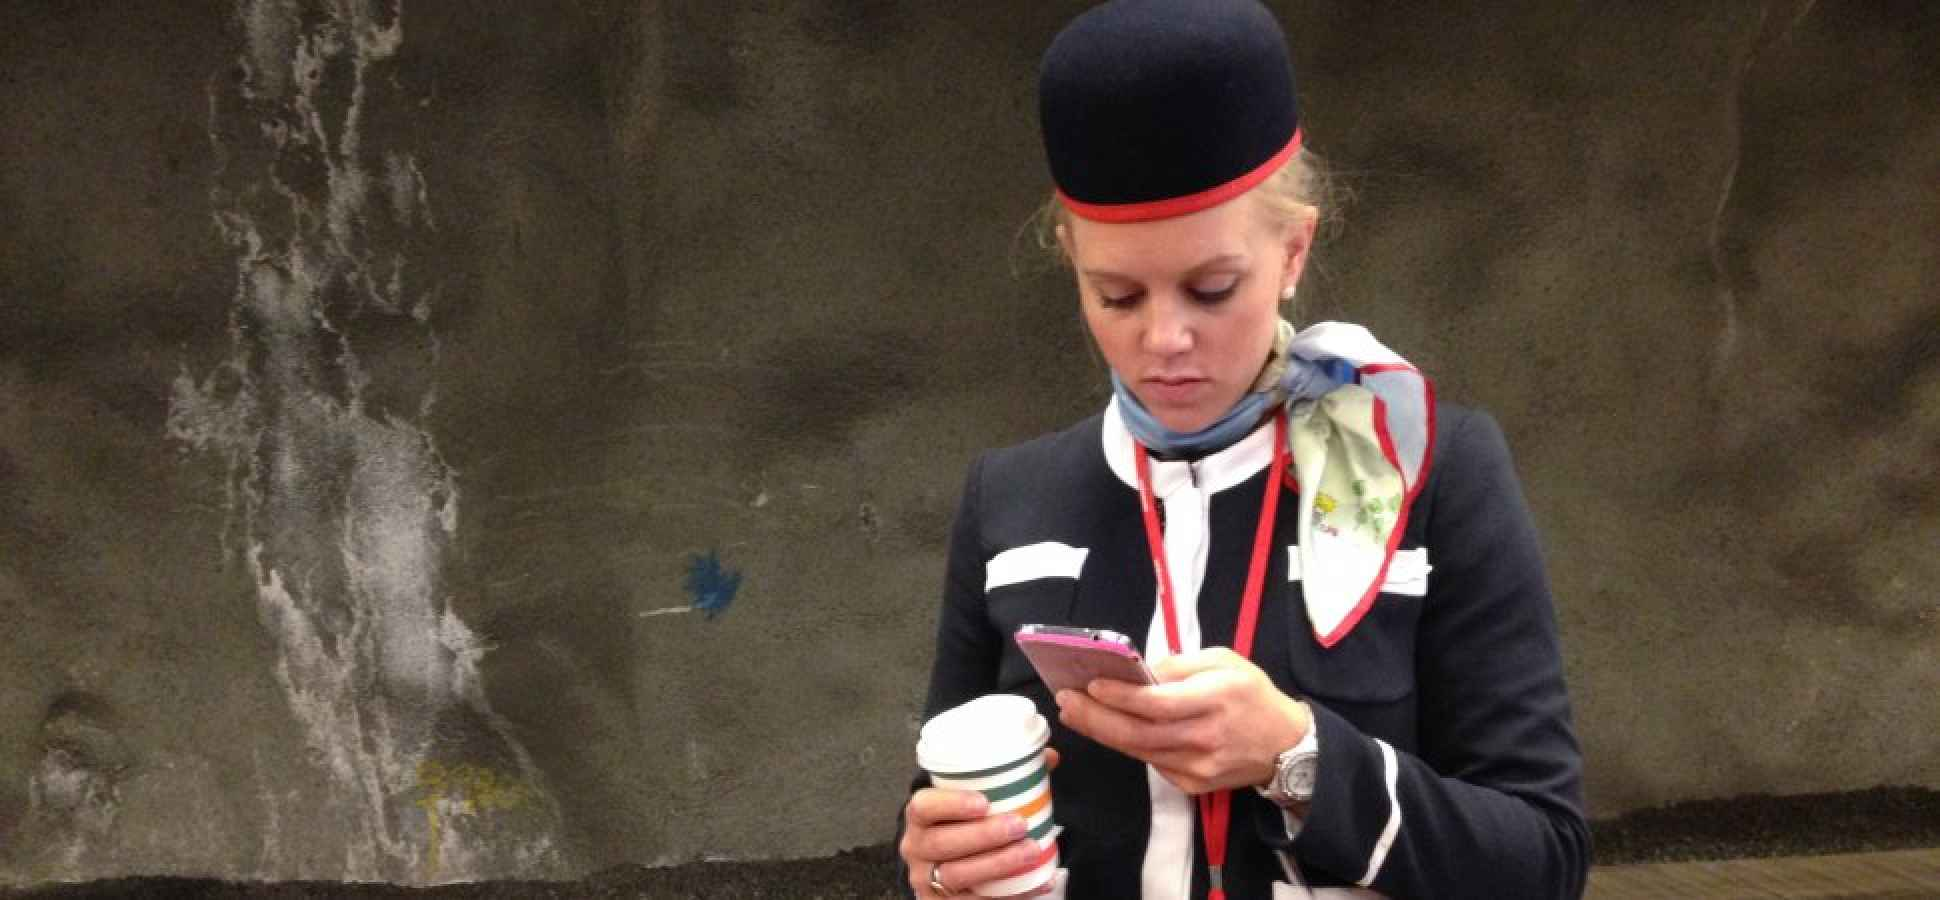 Why United Is Giving Every Flight Attendant a New iPhone 6